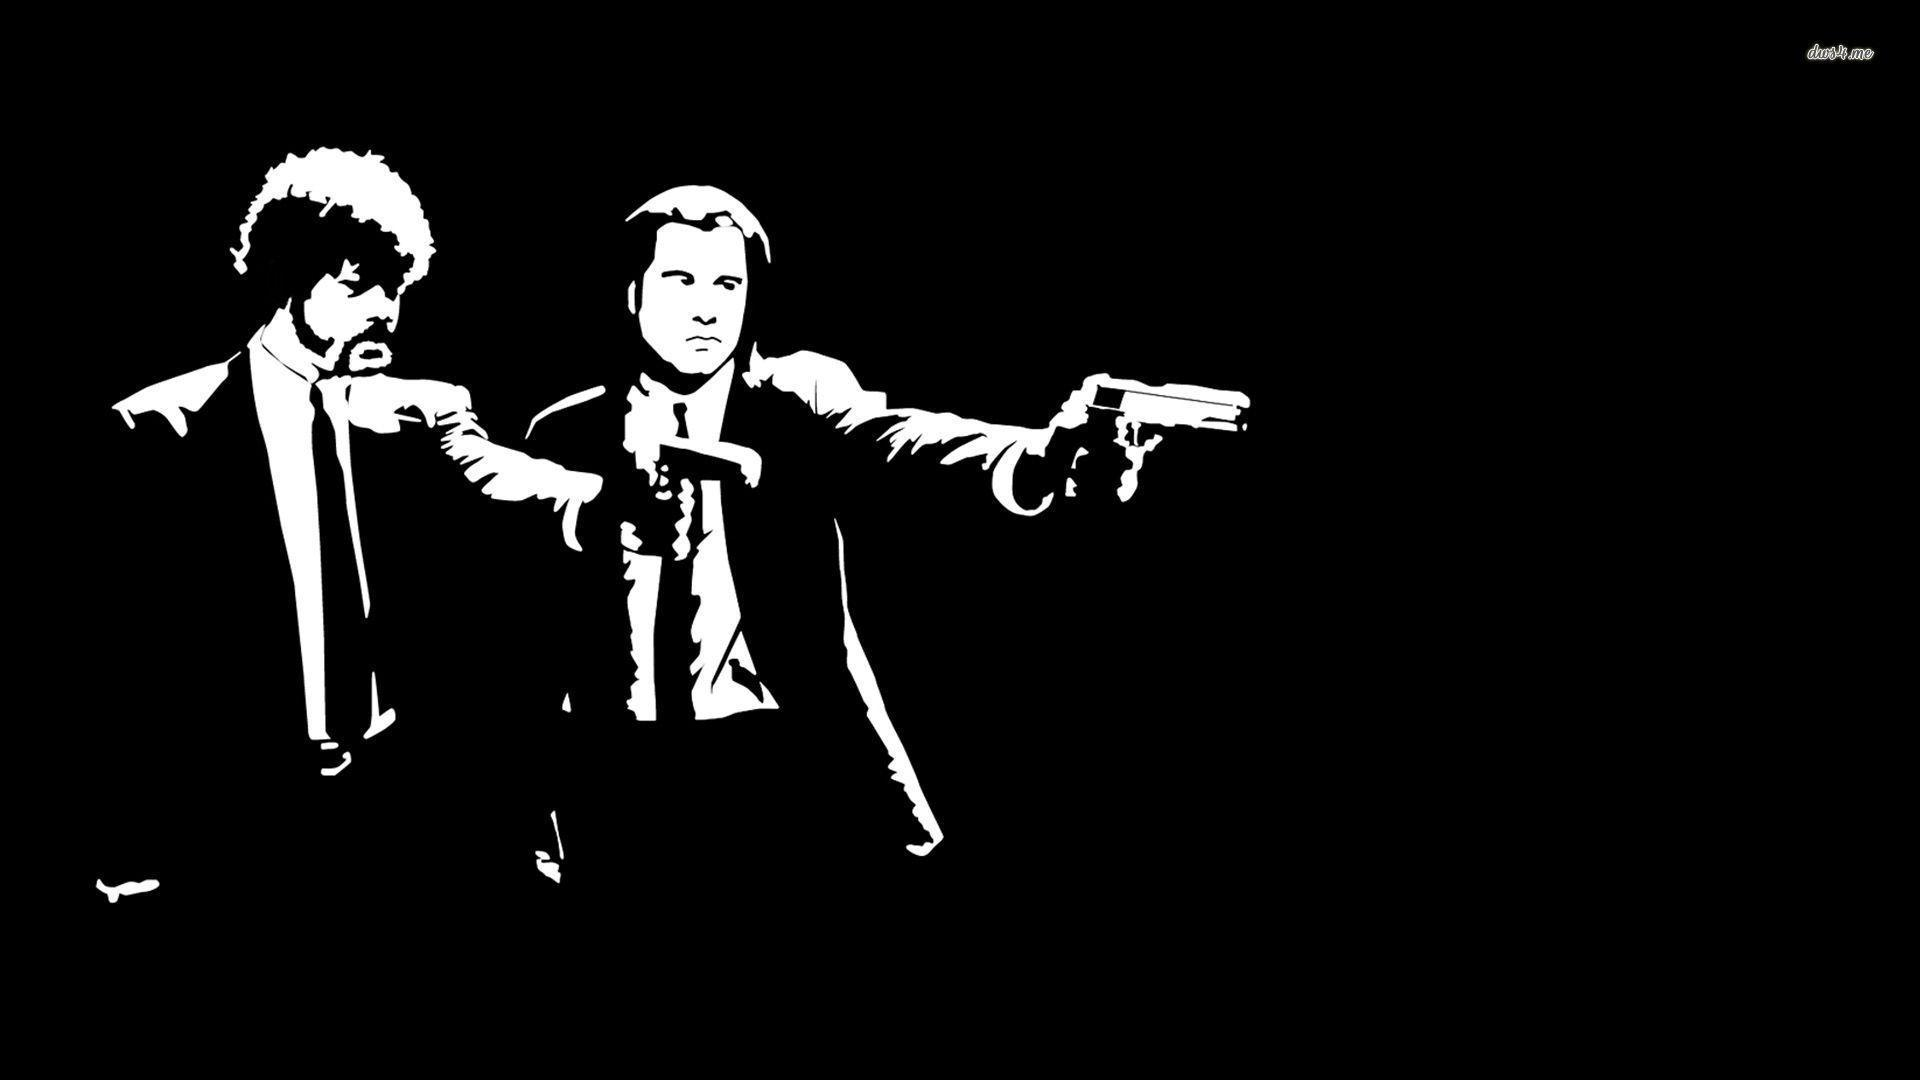 Pulp Fiction Wallpapers Wallpaper Cave